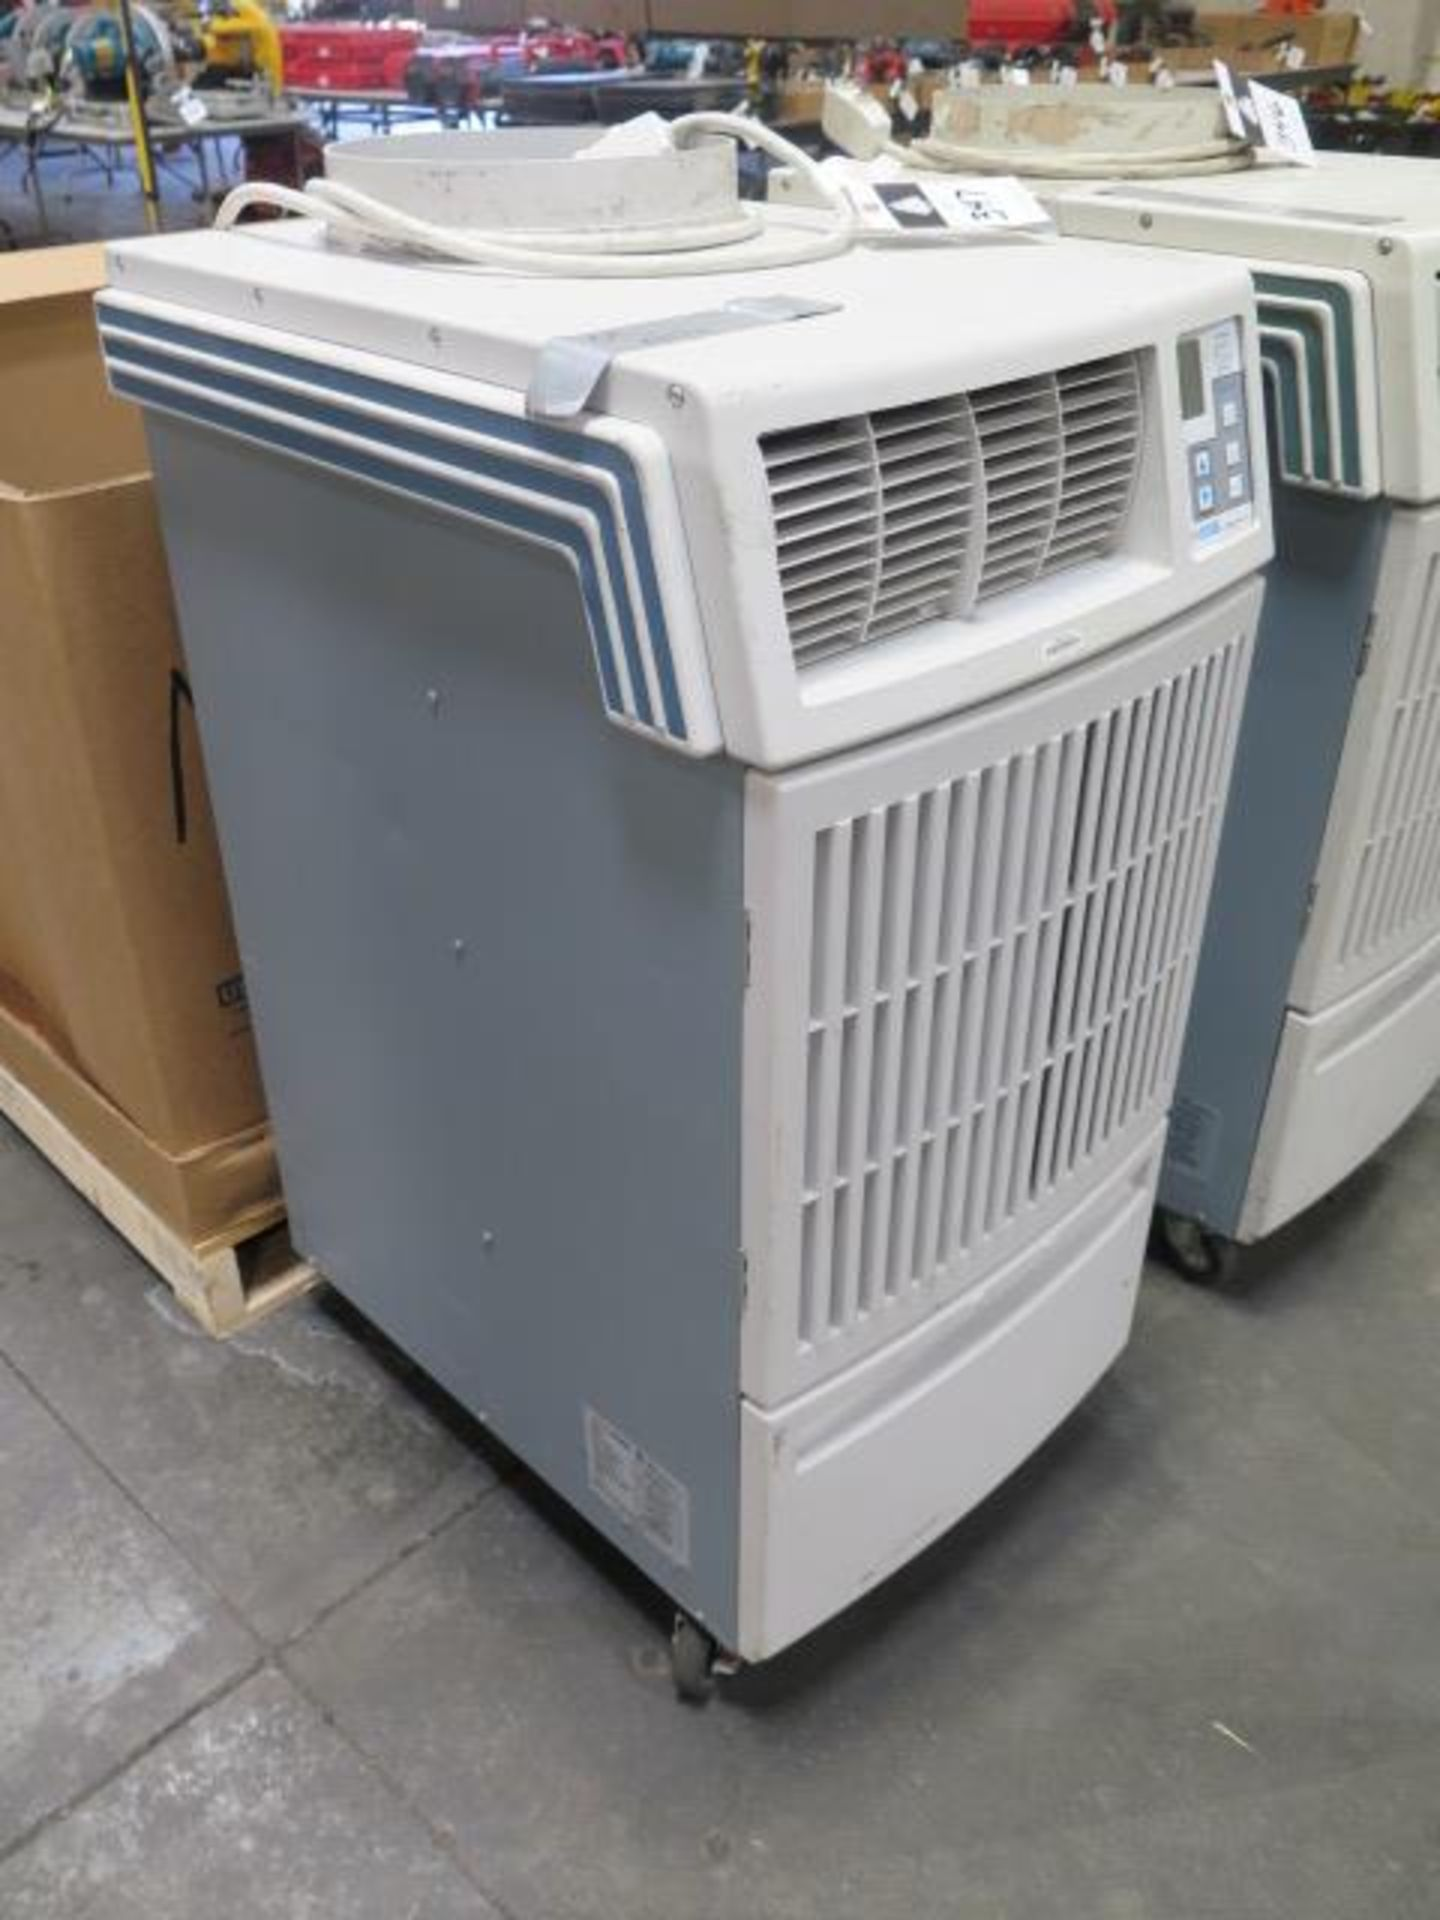 MovinCool Office Pro 18 Portable AC Unit (SOLD AS-IS - NO WARRANTY) - Image 3 of 6